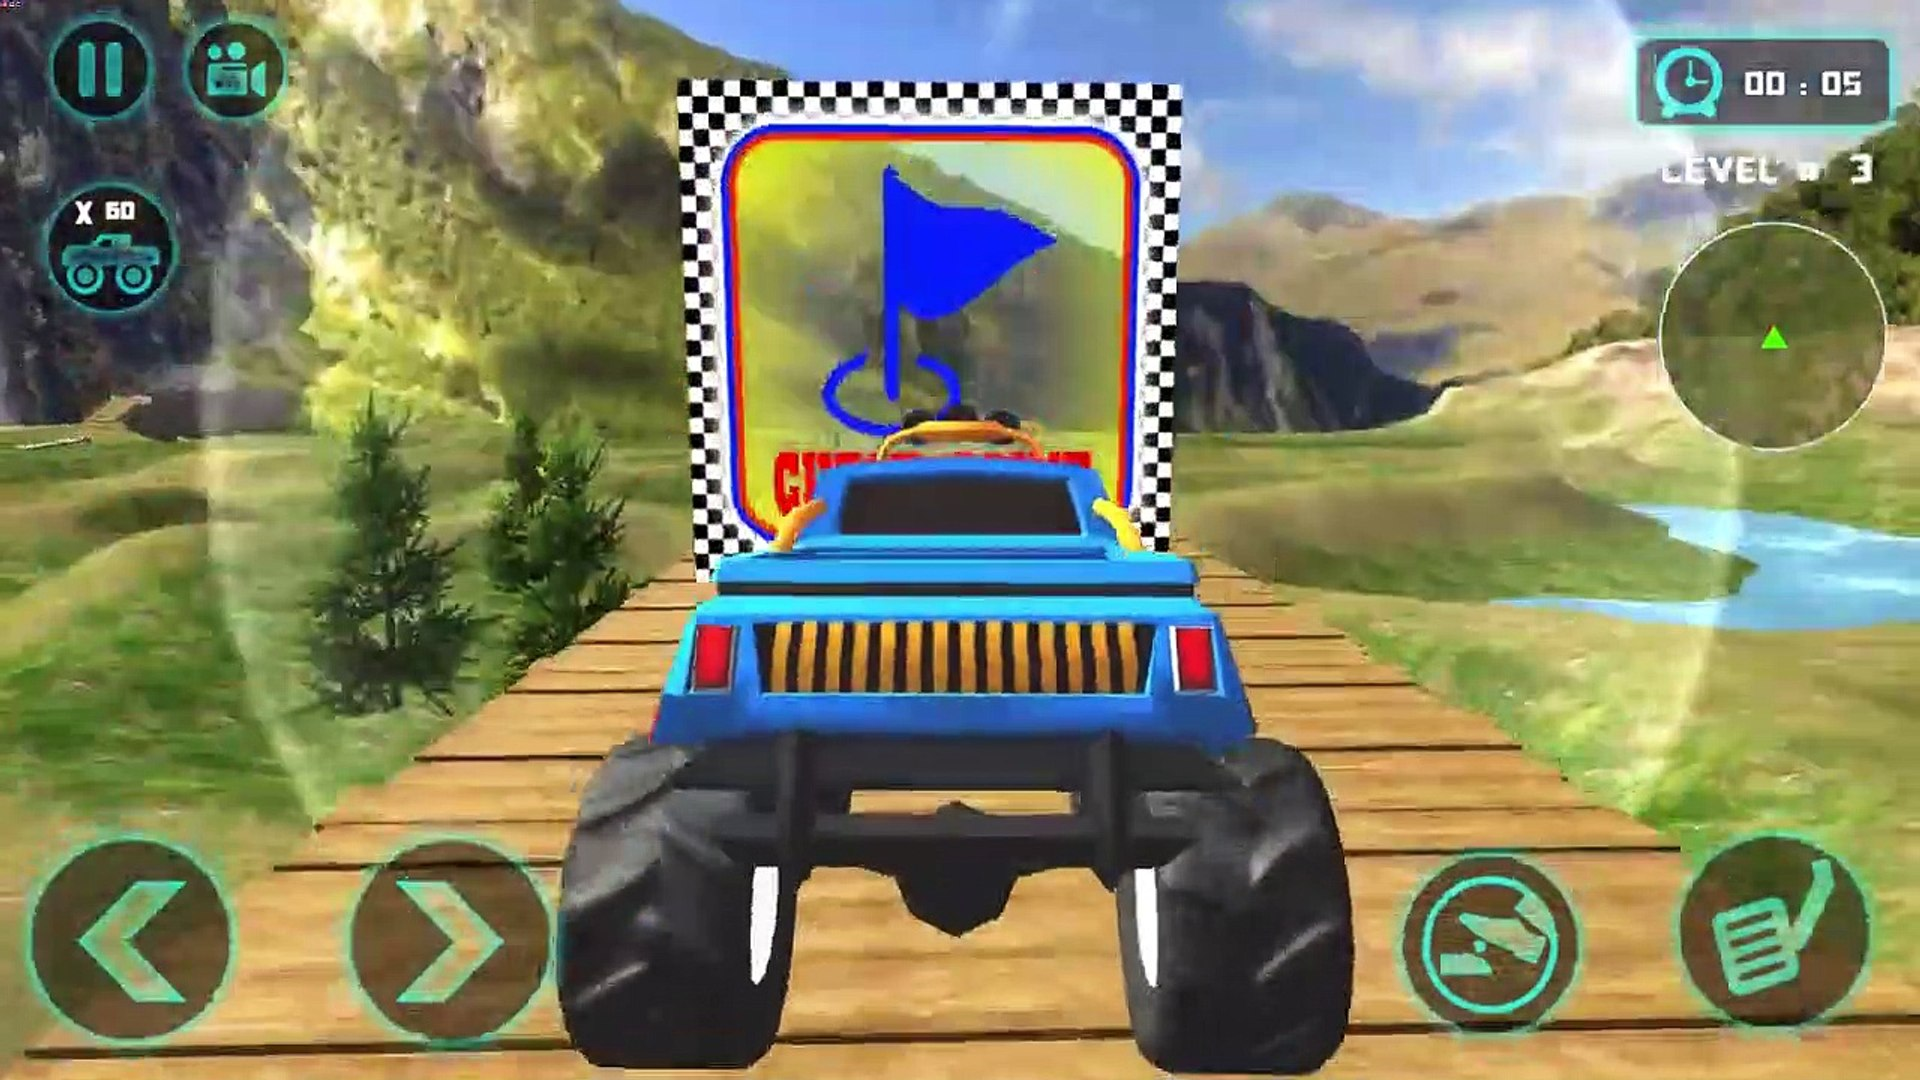 Offroad Monster Truck Drive 2020 - 4 x 4 Mountains Uphill Jeep Car Game - Android GamePlay